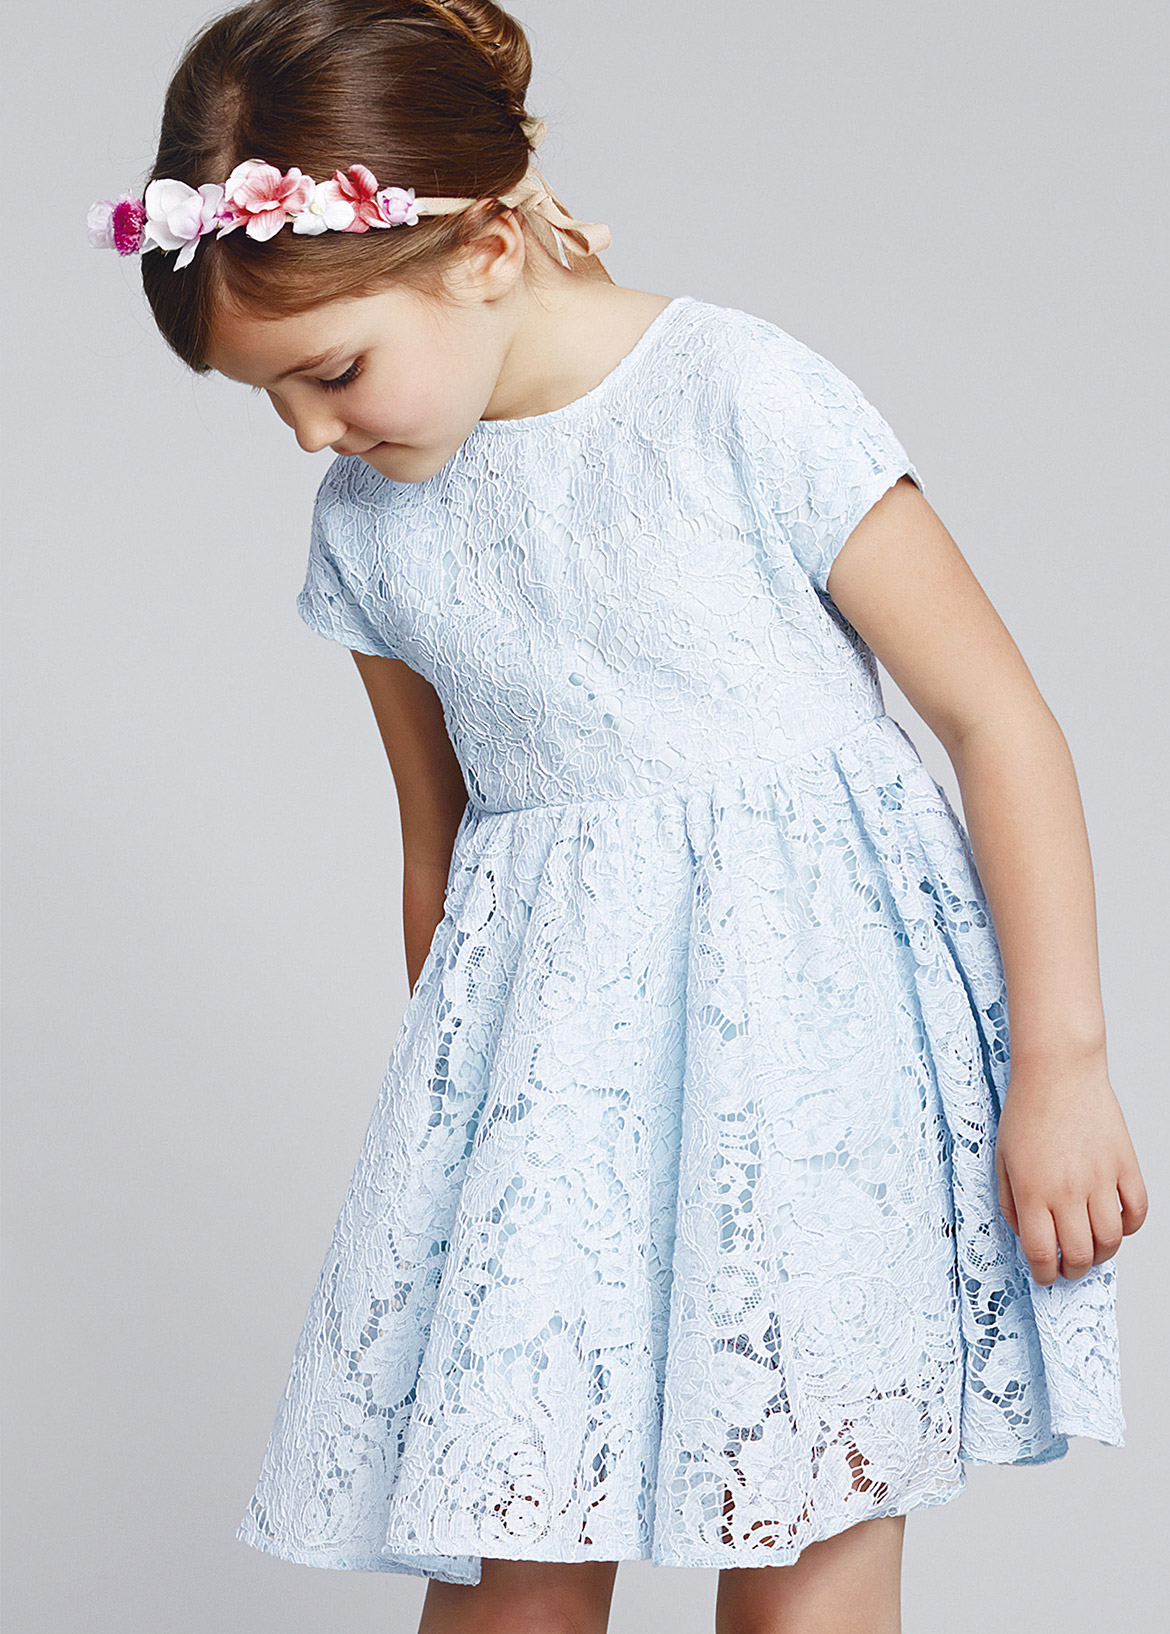 dolce-and-gabbana-ss-2014-child-collection (21)